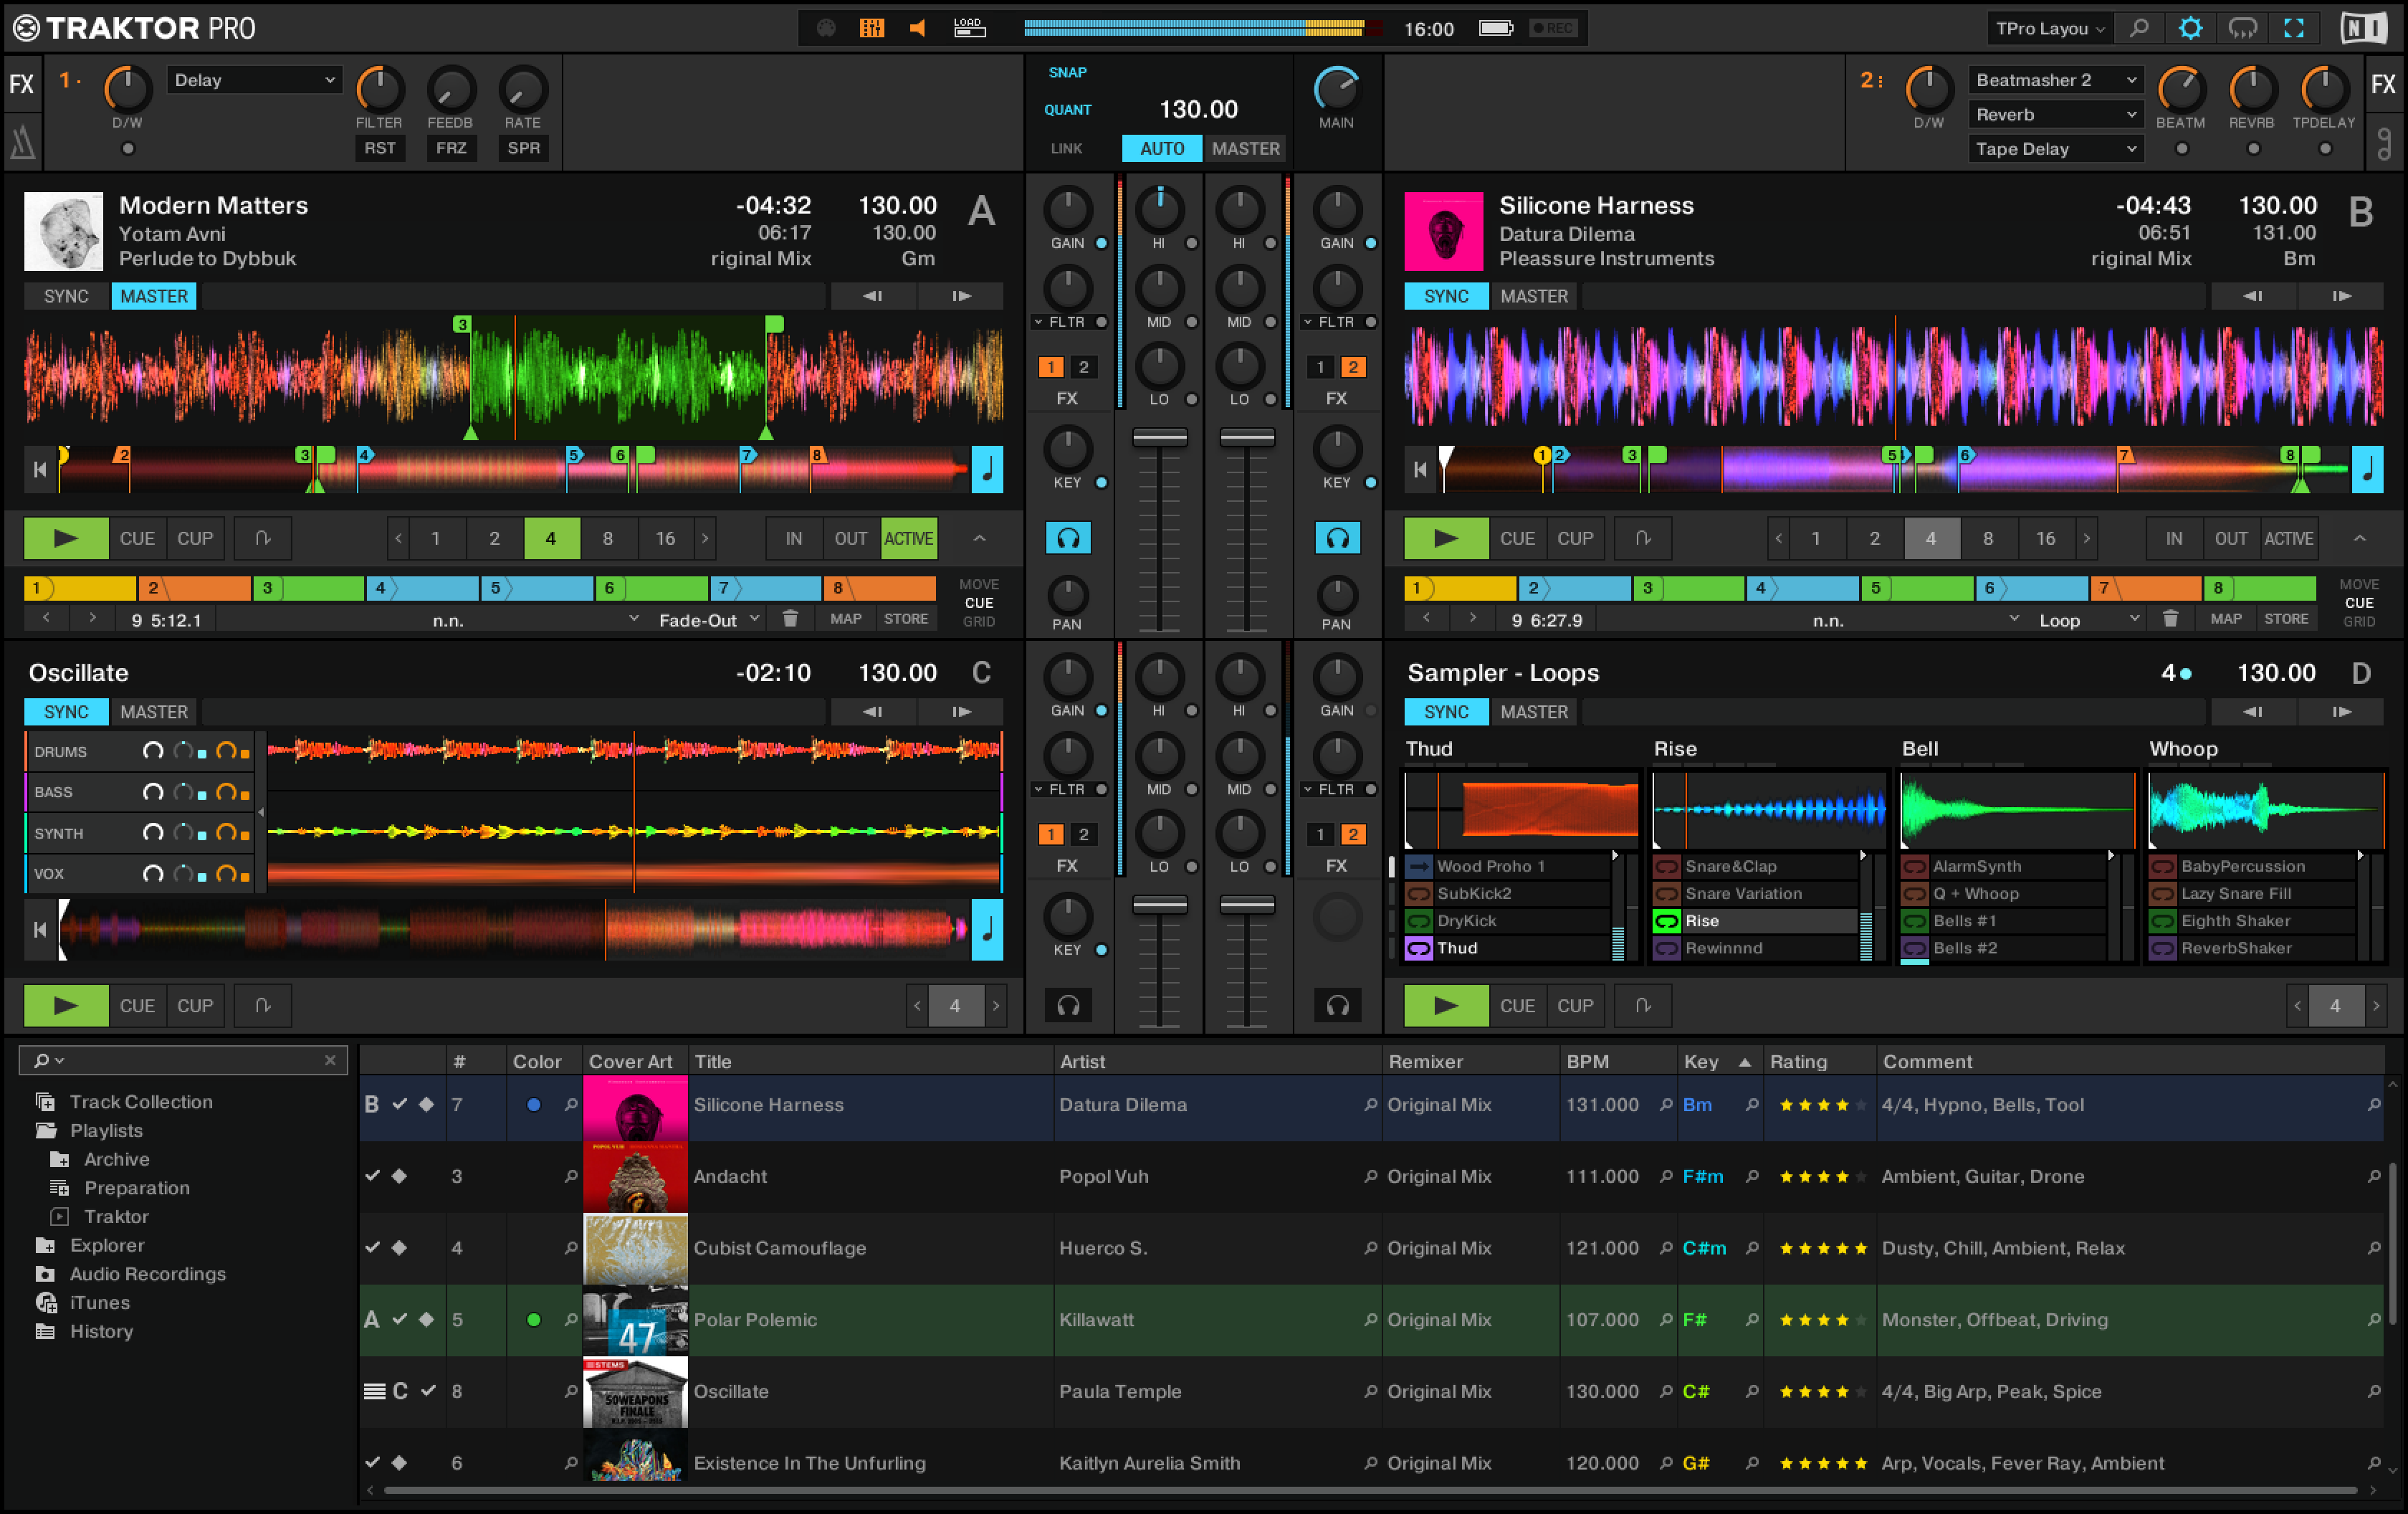 Traktor File Management Fixing Could Not Read Collection Playlist File Error